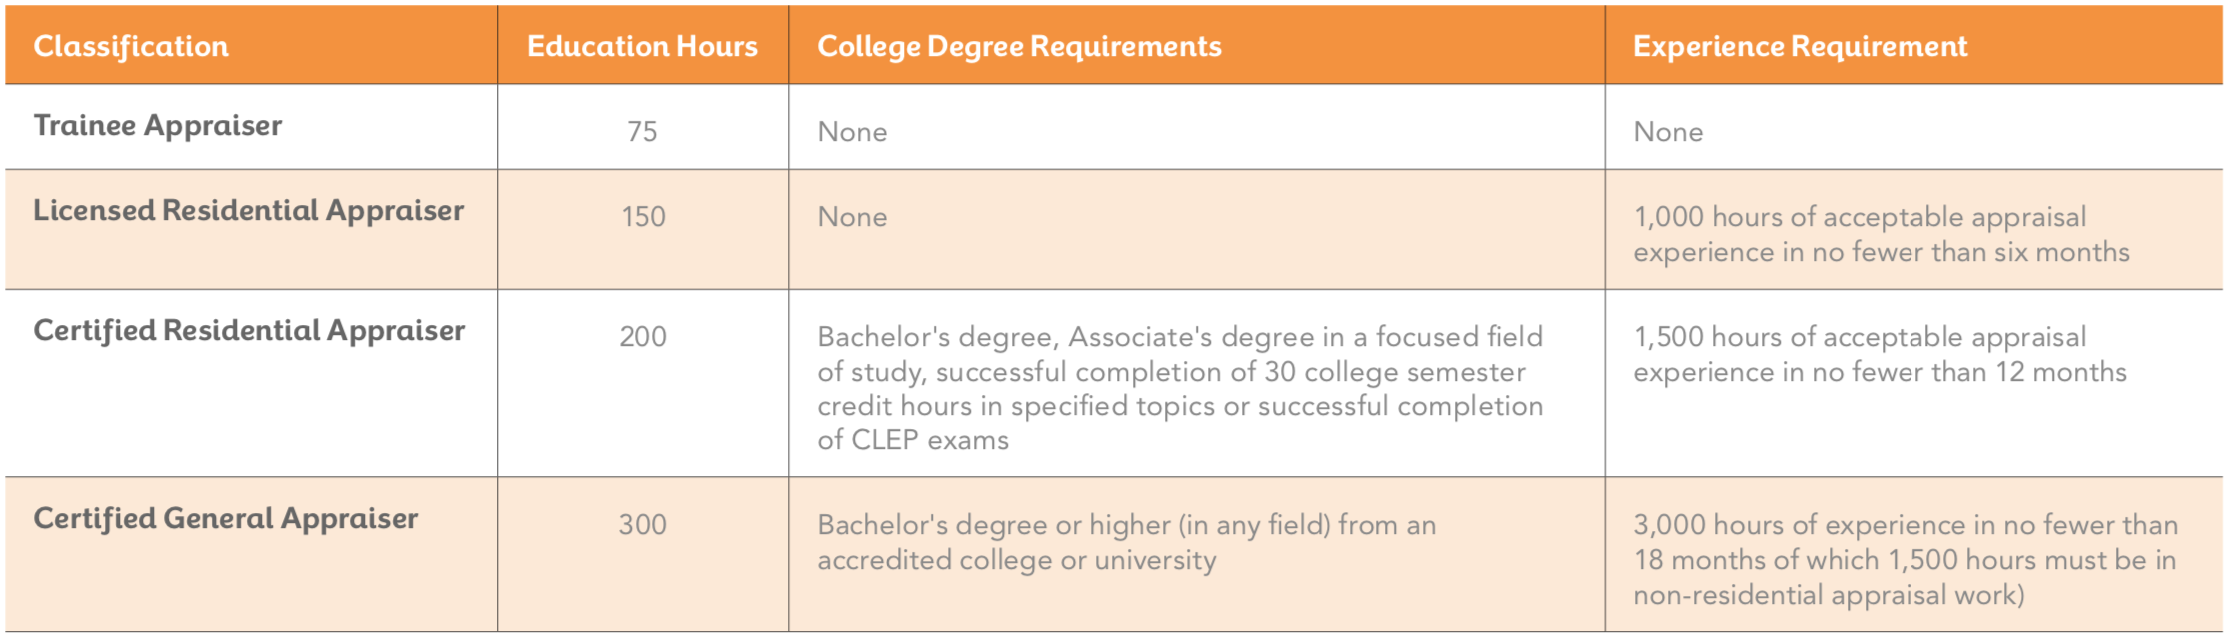 Do you need a college degree to become an appraiser?